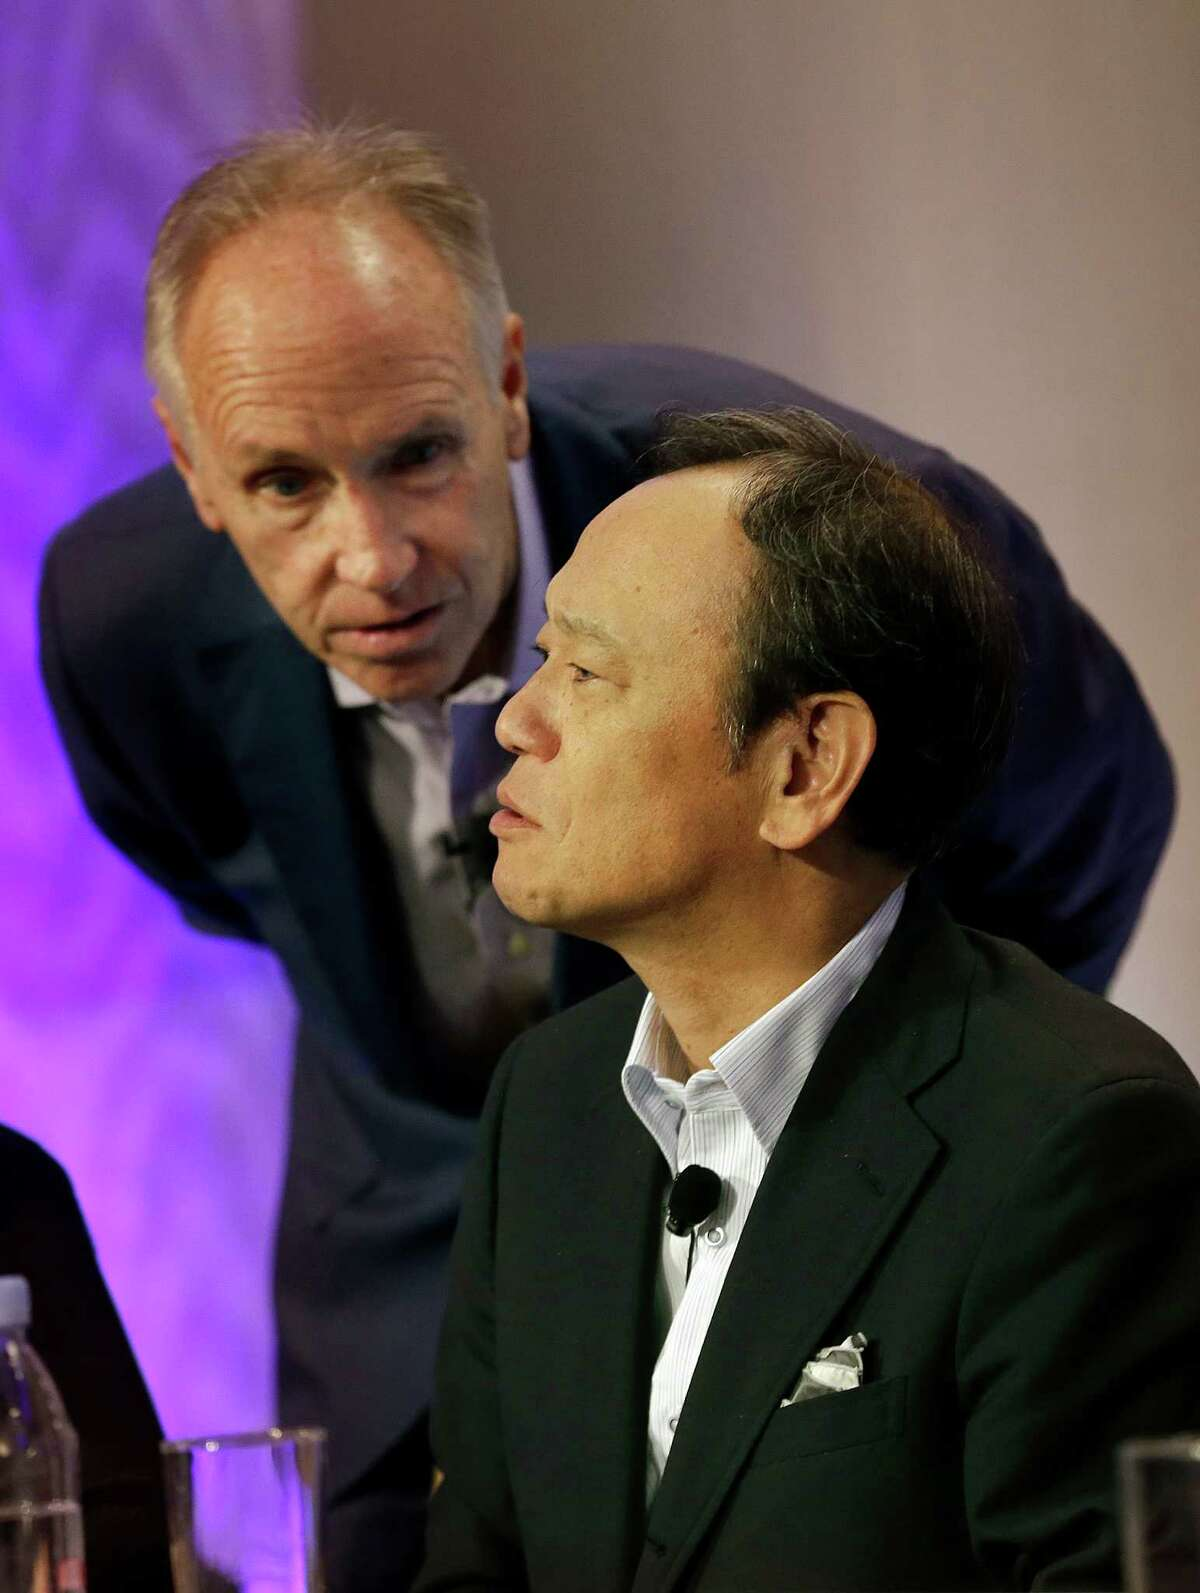 Kiyotaka Ise, Senior Managing Officer for Toyota Motor Corporation, bottom, listens to Chuck Gulash, Toyota Senior Executive Engineer, during a news conference in East Palo Alto, Calif., Friday, Sept. 4, 2015. Toyota announced it is investing $50 million with Stanford University and the Massachusetts Institute of Technology in hopes of gaining an edge in an accelerating race to phase out human drivers. (AP Photo/Jeff Chiu) ORG XMIT: CAJC102